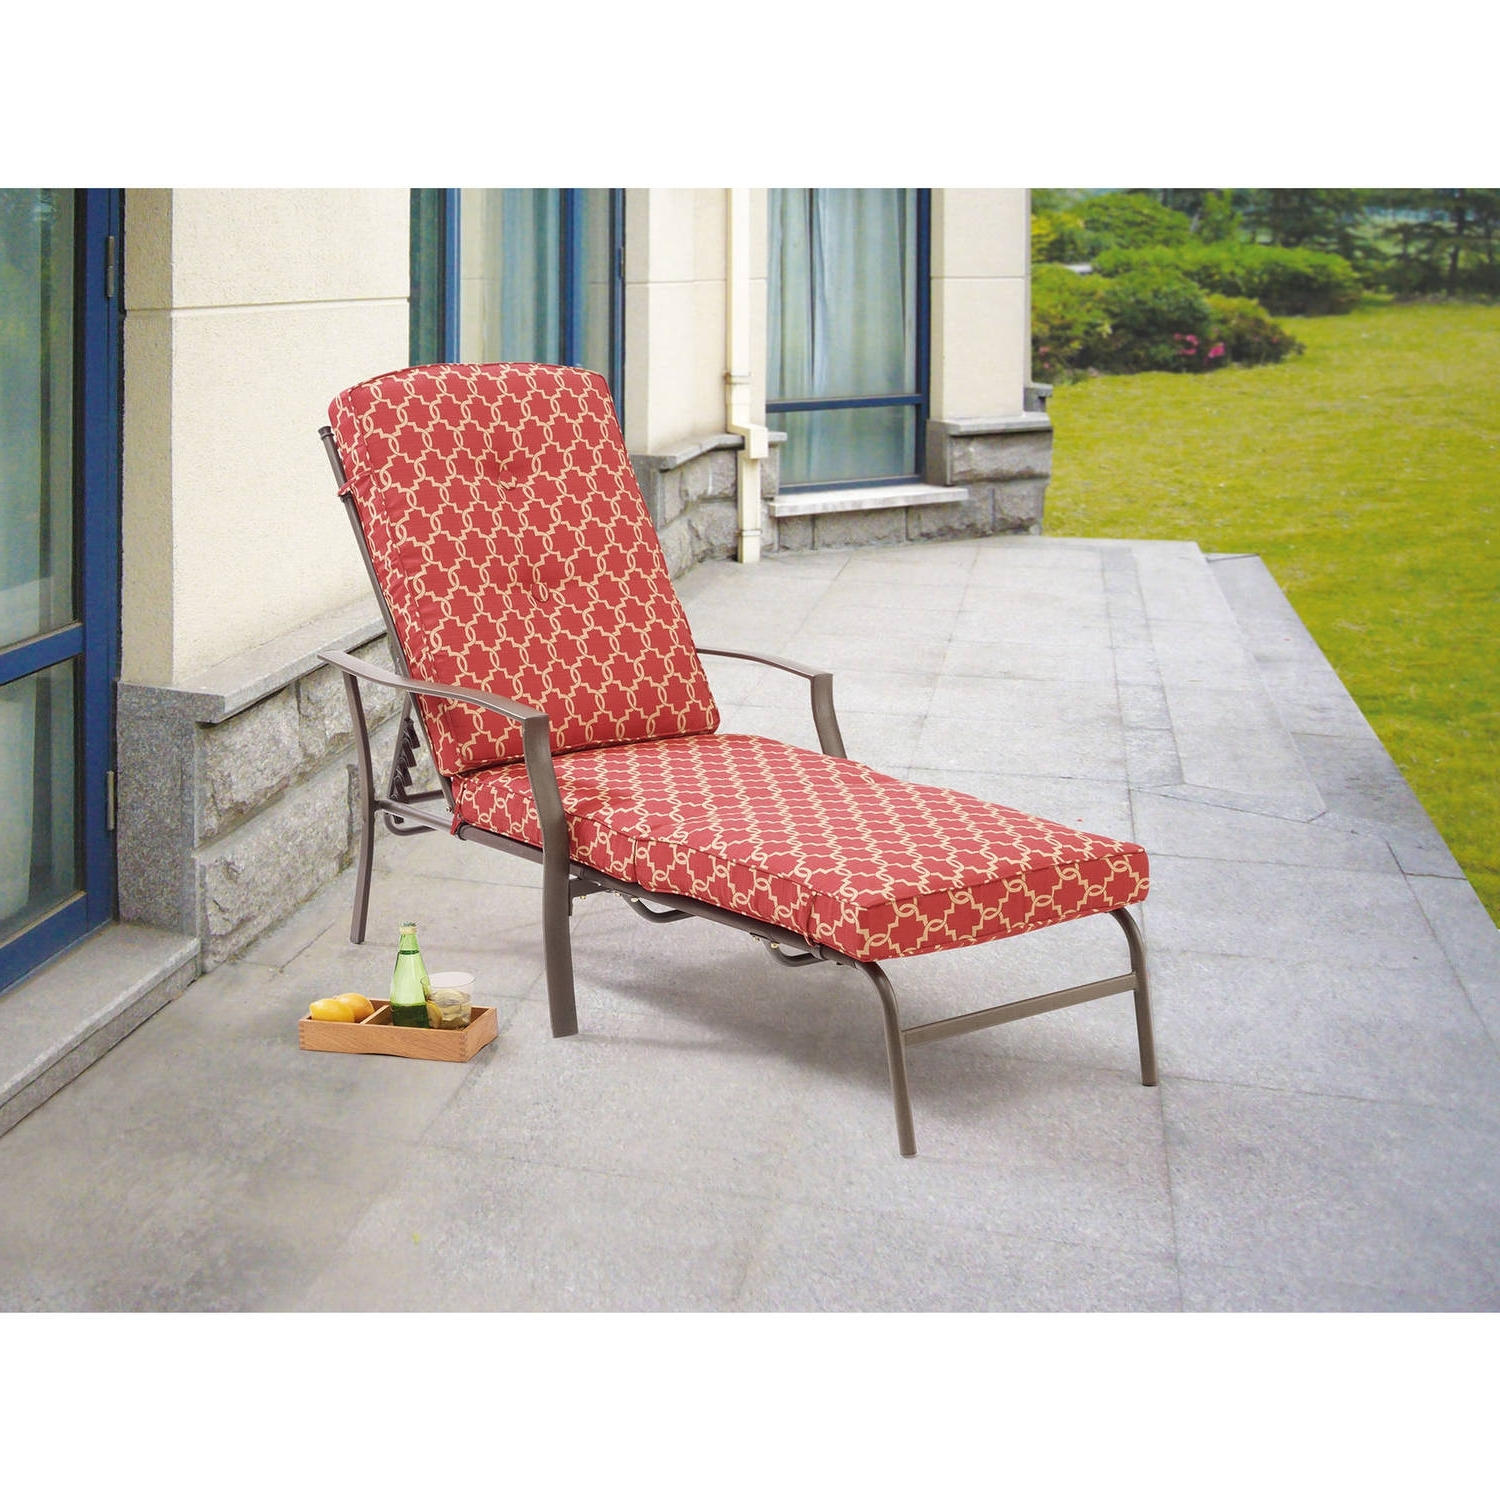 Current Outdoor Chaise Lounge Chairs At Walmart Intended For Cosco Outdoor Adjustable Aluminum Chaise Lounge Chair Serene Ridge (View 6 of 15)